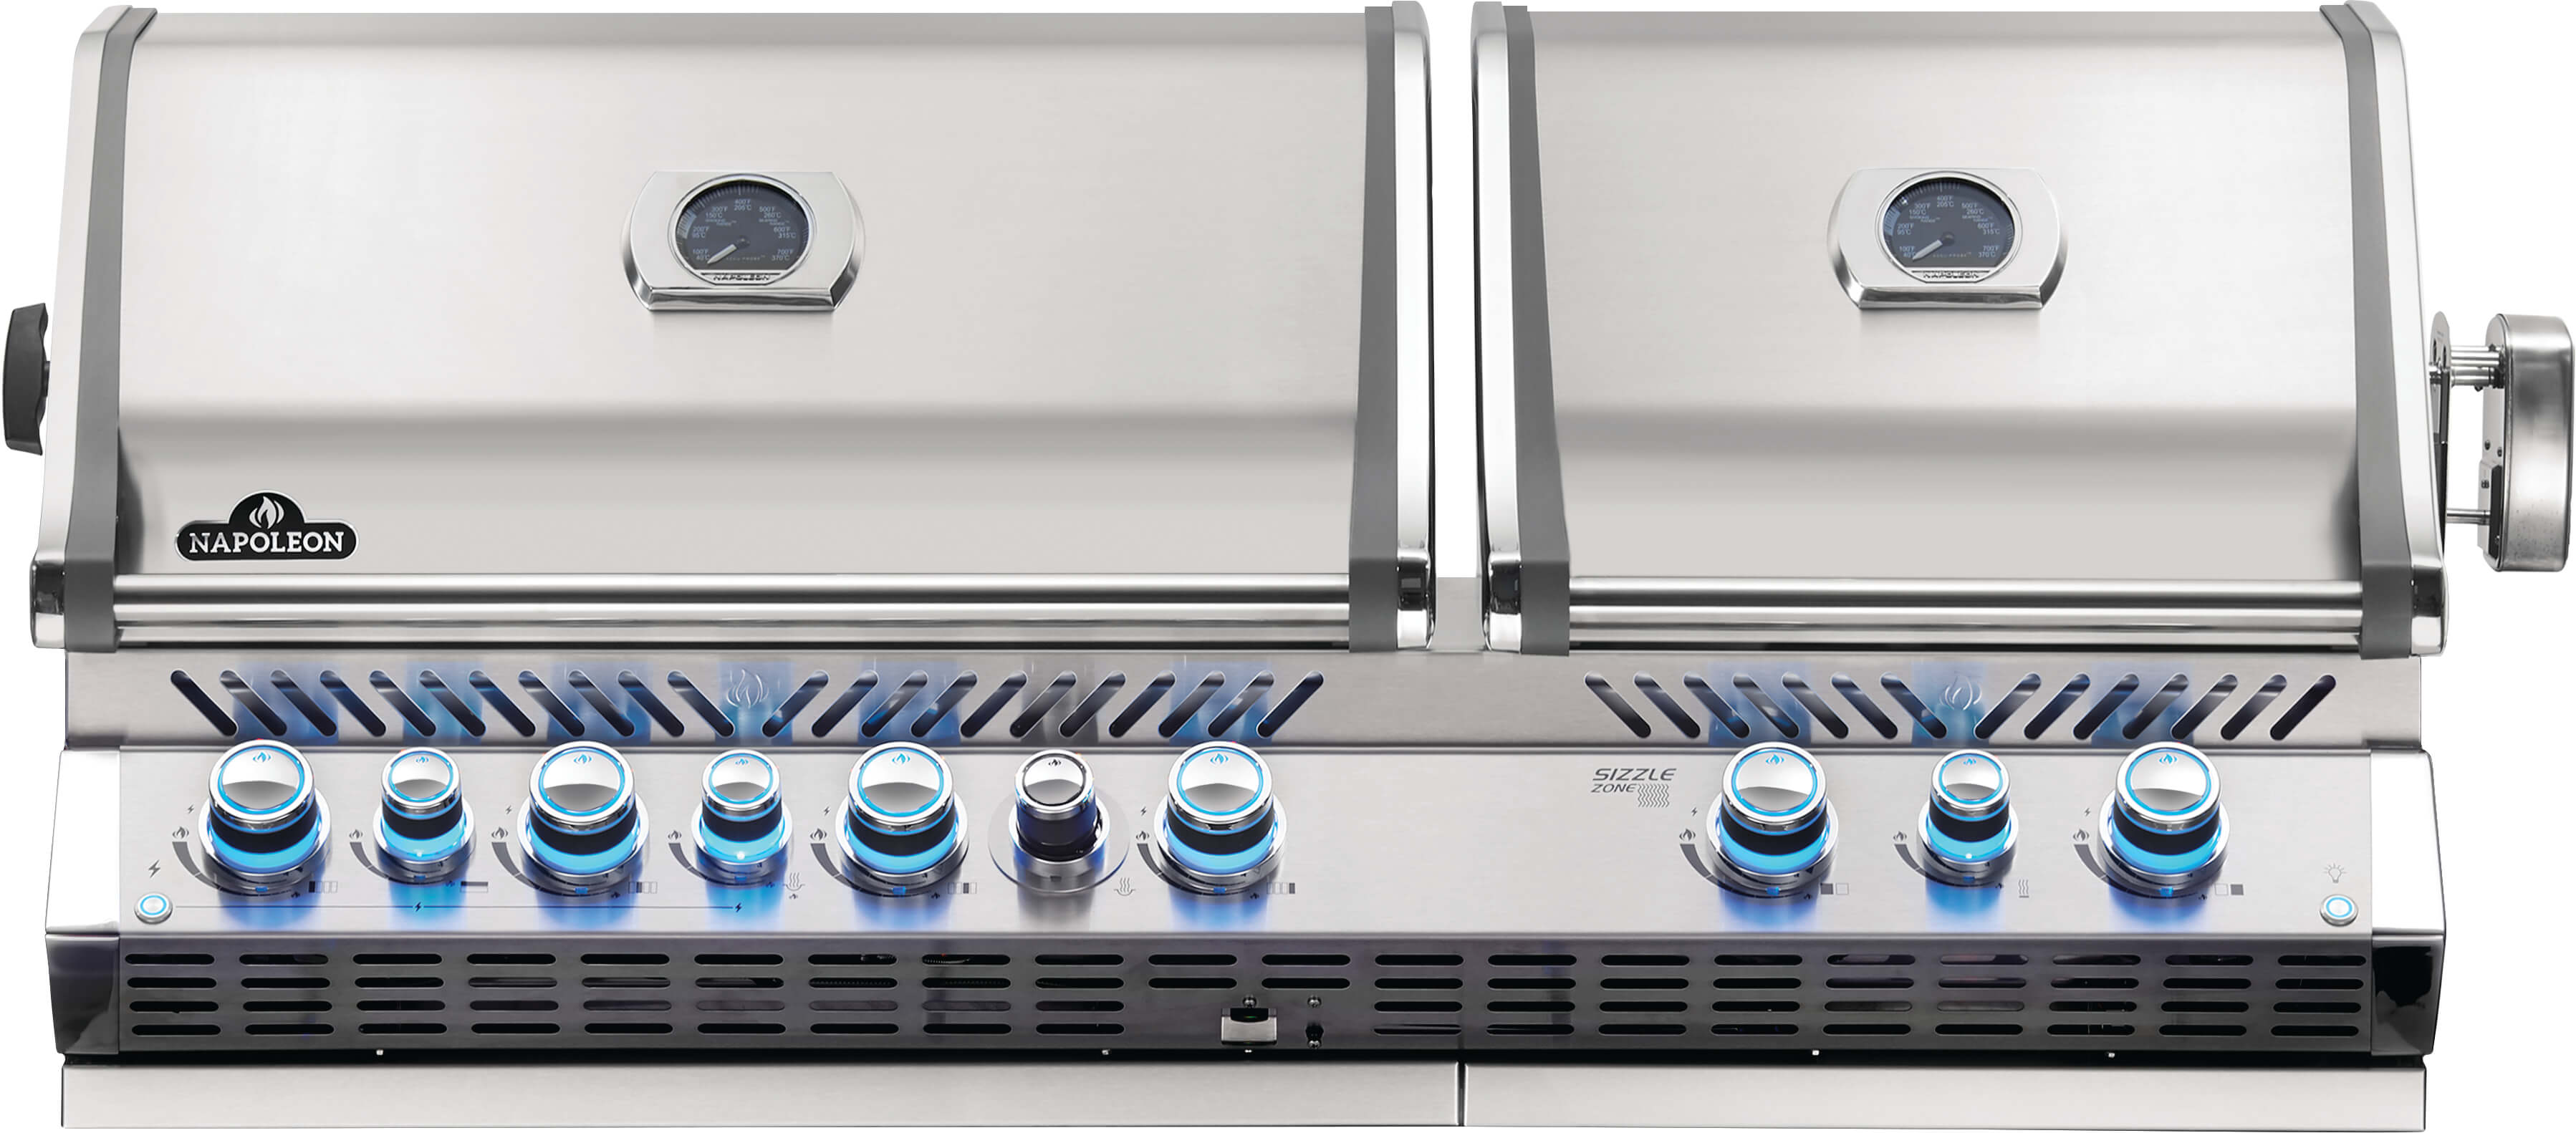 Built-in Prestige PRO™ 825 Propane Gas Grill Head with Infrared Bottom and Rear Burner, Stainless Steel